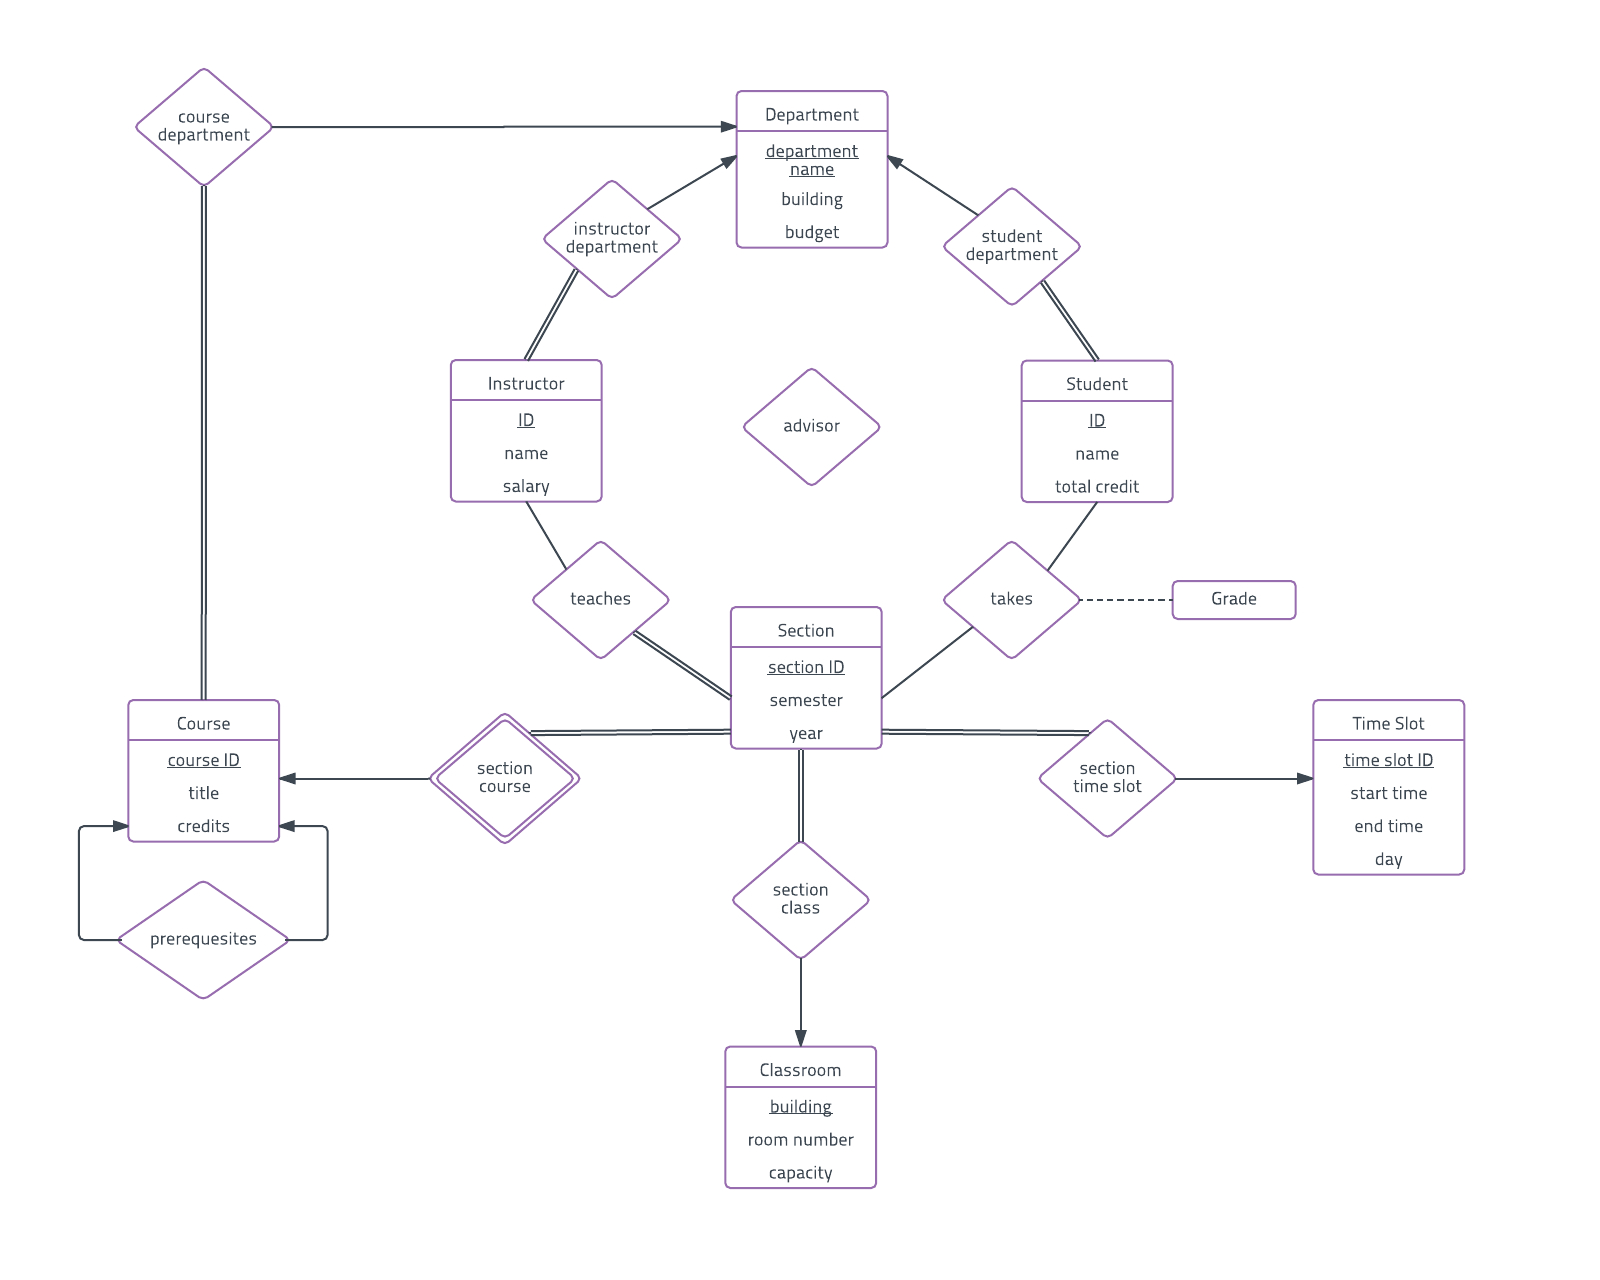 Er Diagram Examples And Templates | Lucidchart in Er Diagram Examples For Banking System